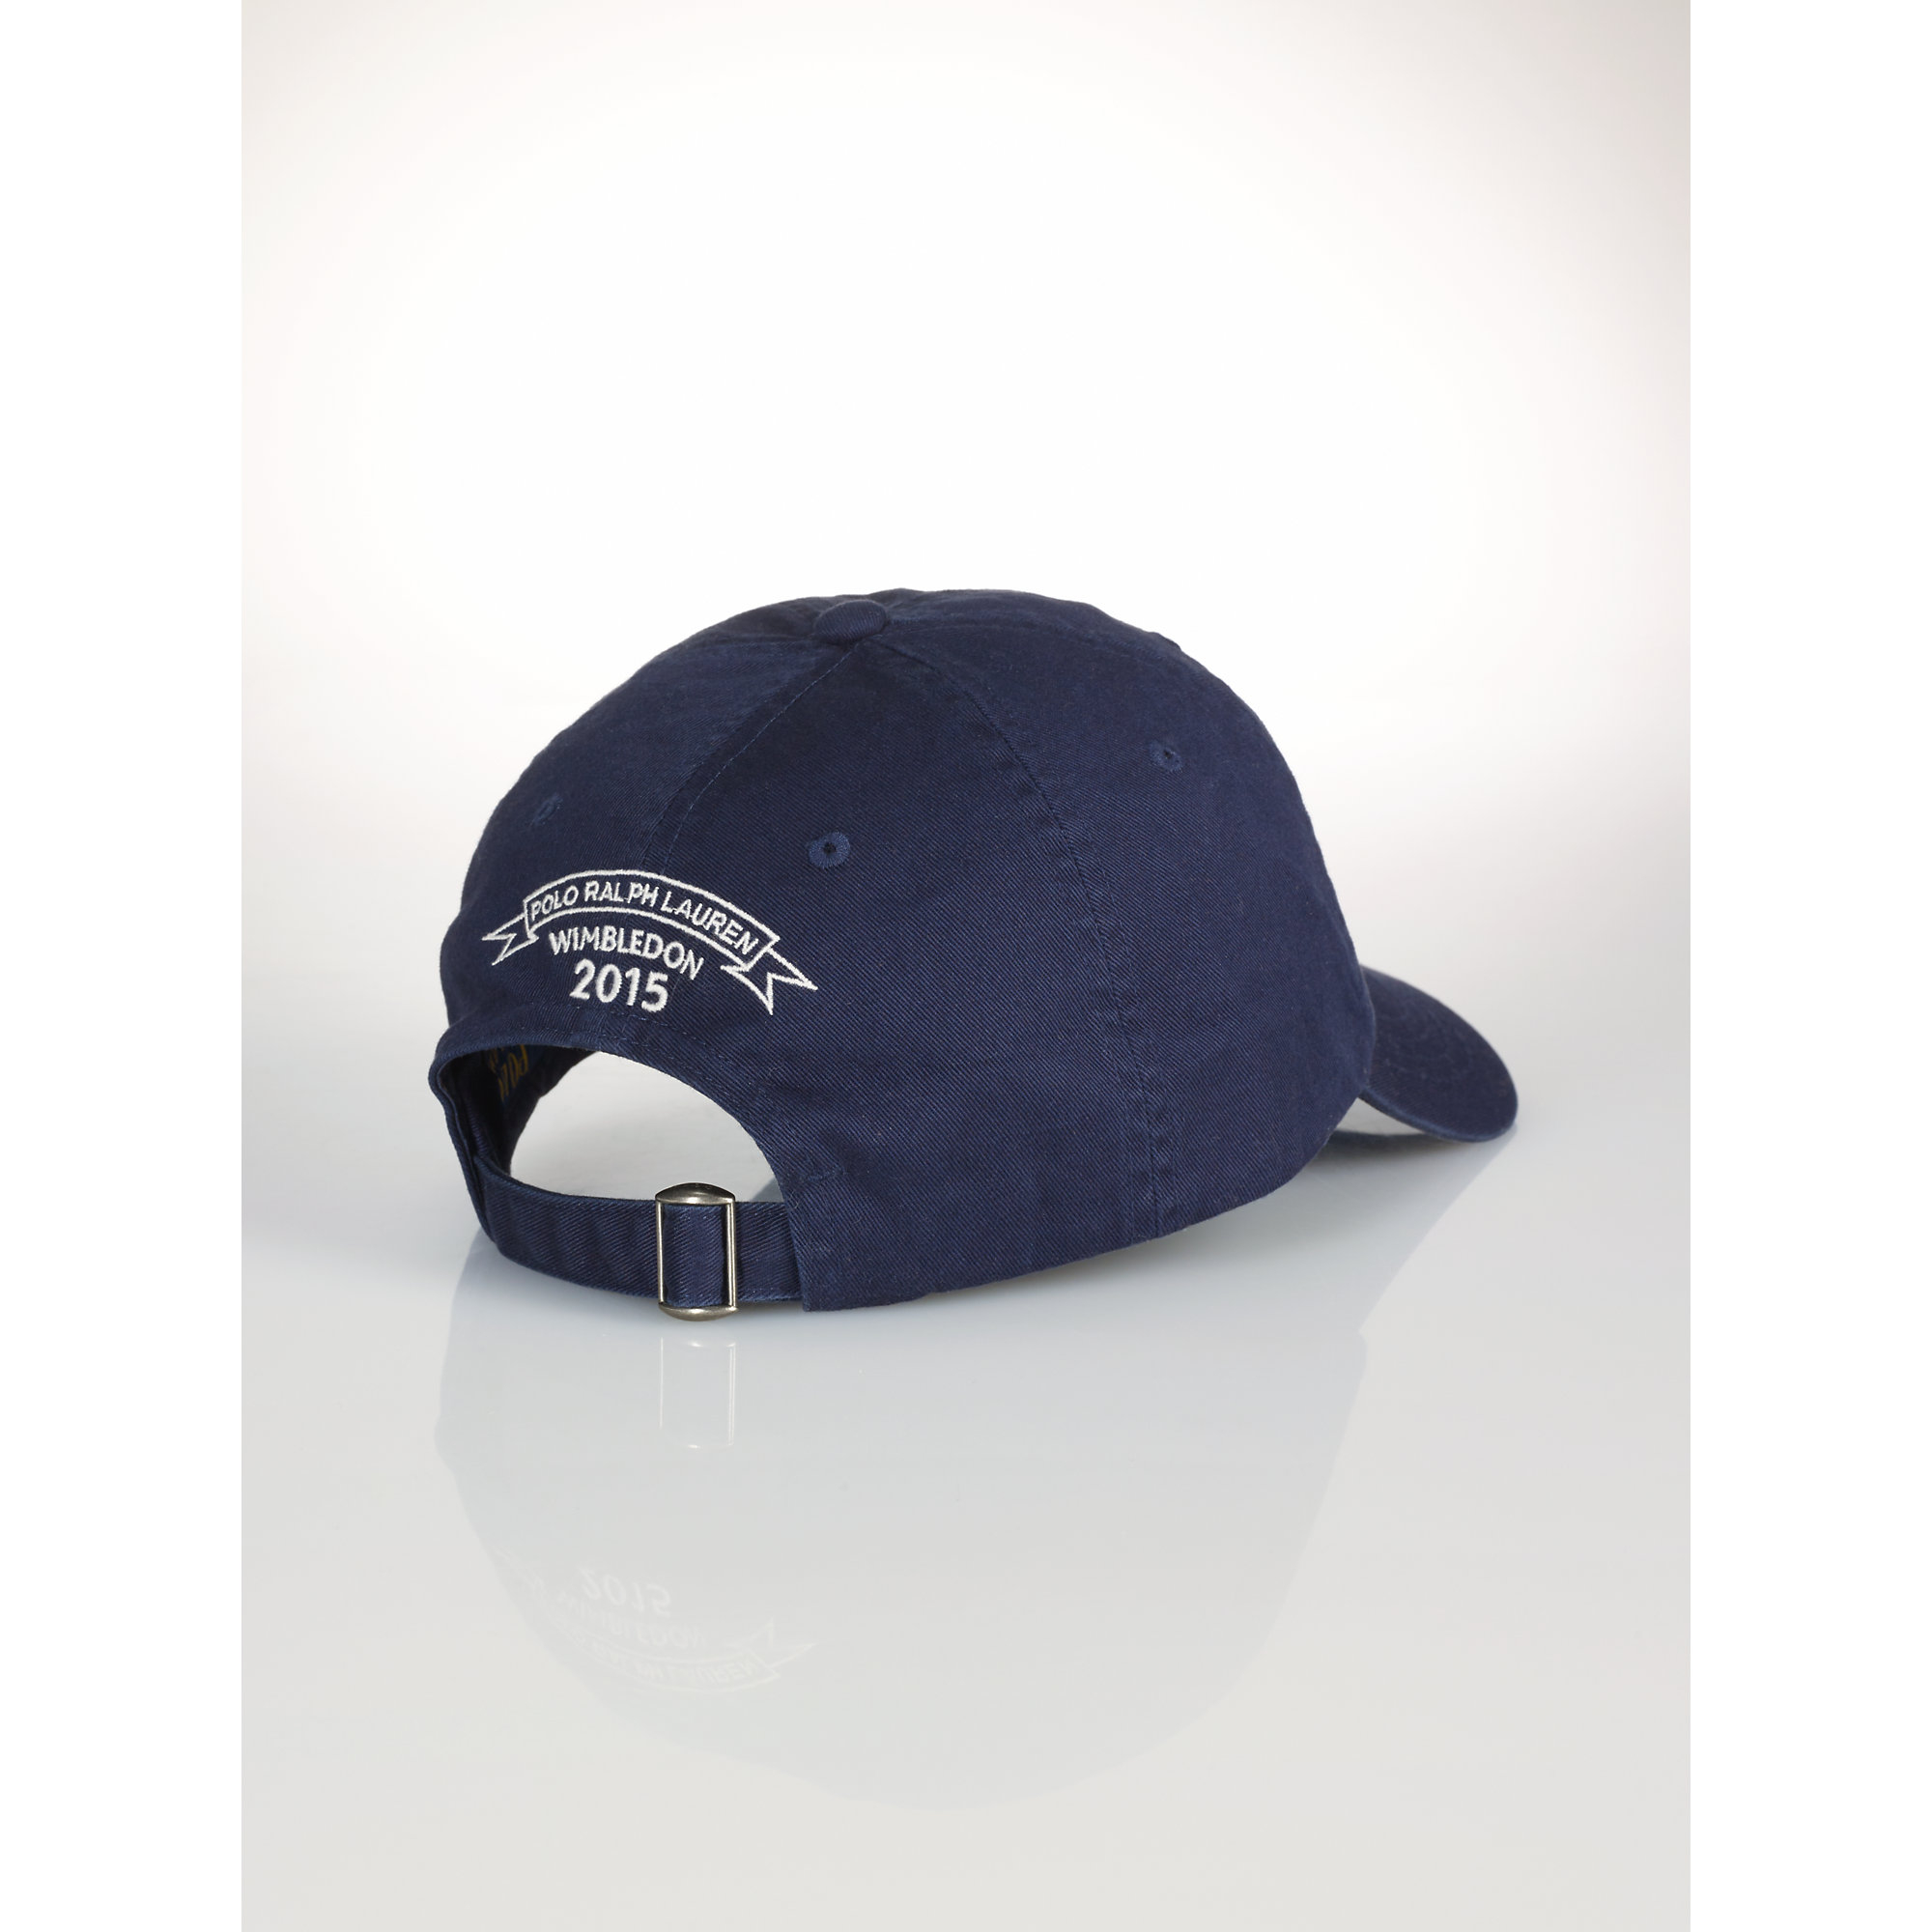 Lyst - Polo Ralph Lauren Wimbledon Sports Cap in Blue for Men 2602bcaaf0f